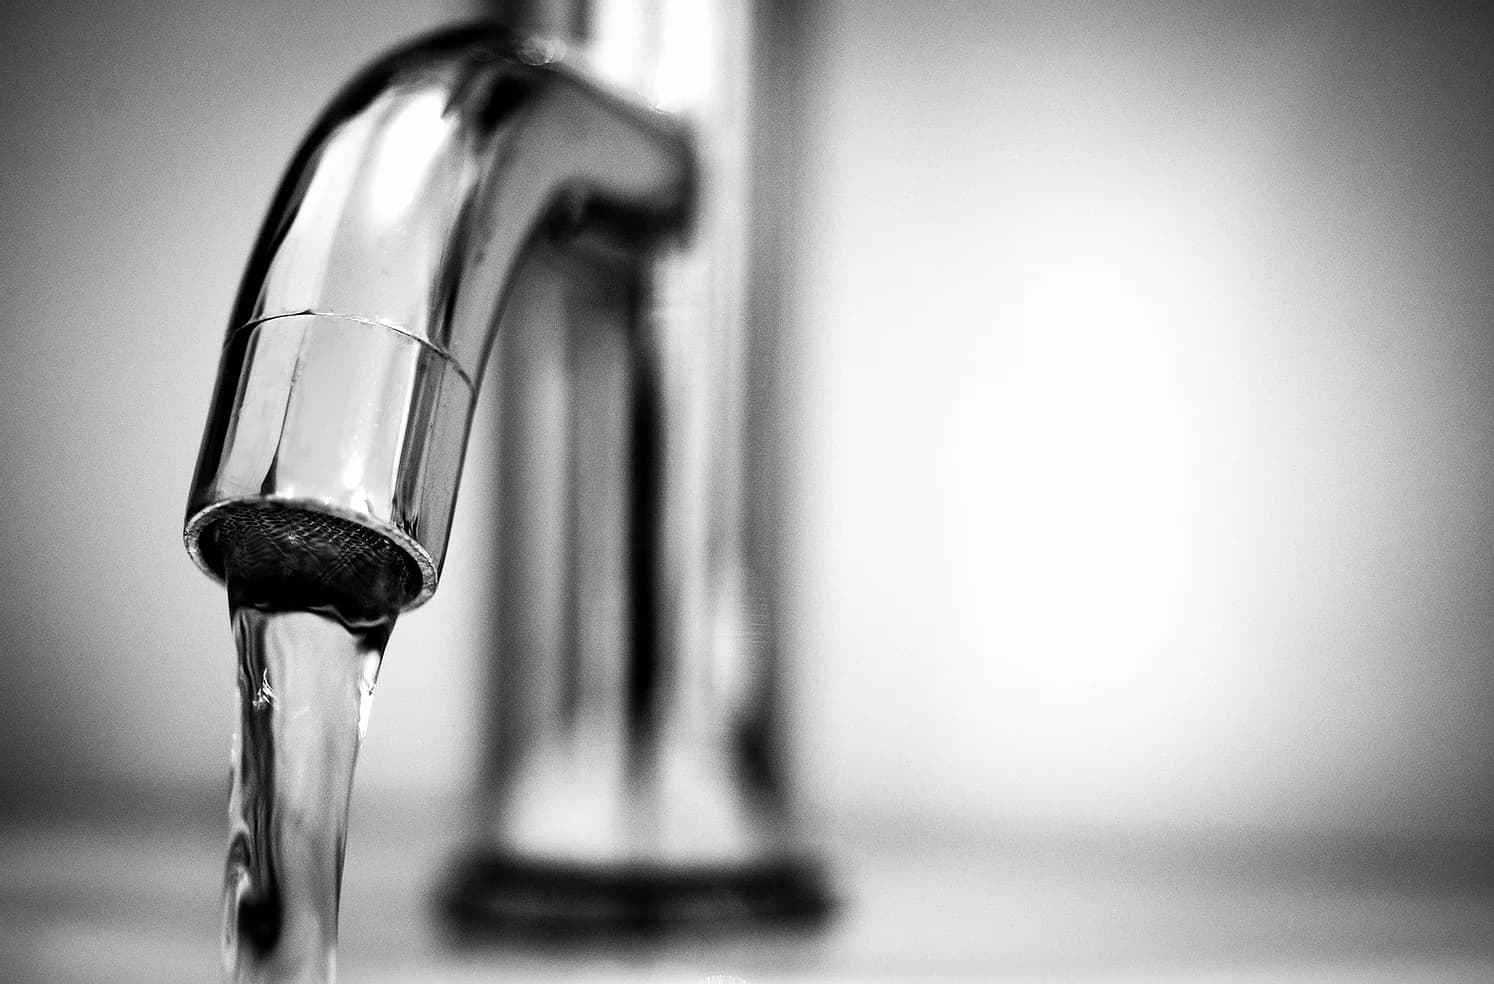 Picture of a water tap